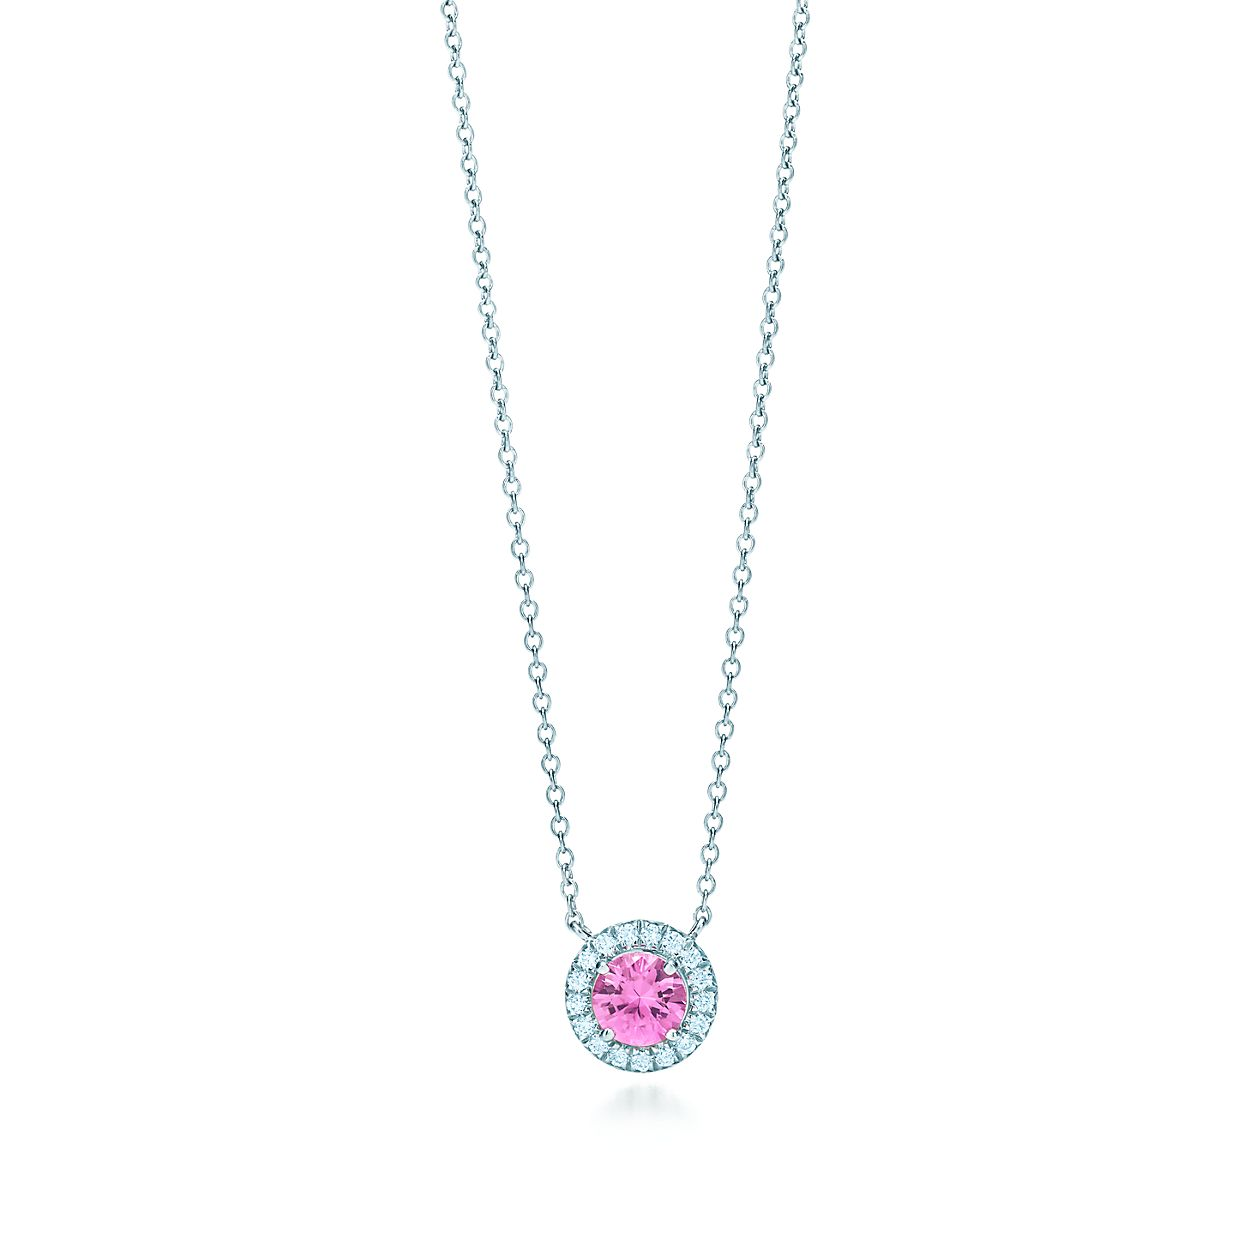 Tiffany soleste pendant in platinum with a pink sapphire and tiffany solestepink sapphire and diamond pendant aloadofball Gallery